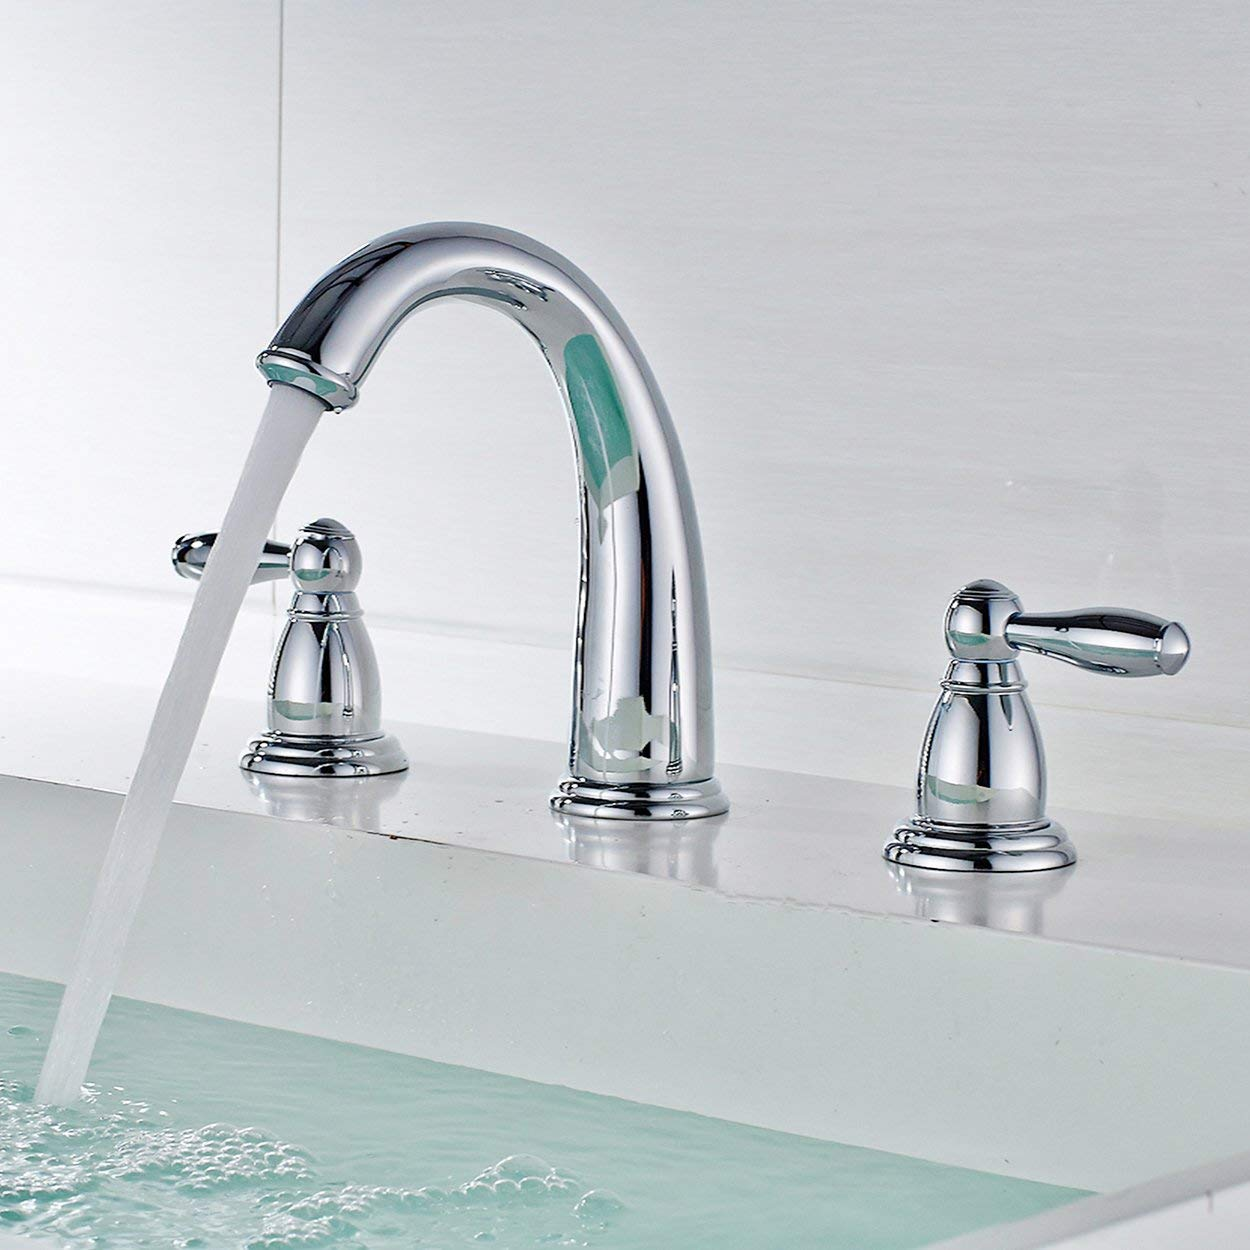 Double Handle Chrome Finish Widespread Bathroom Sink Faucet